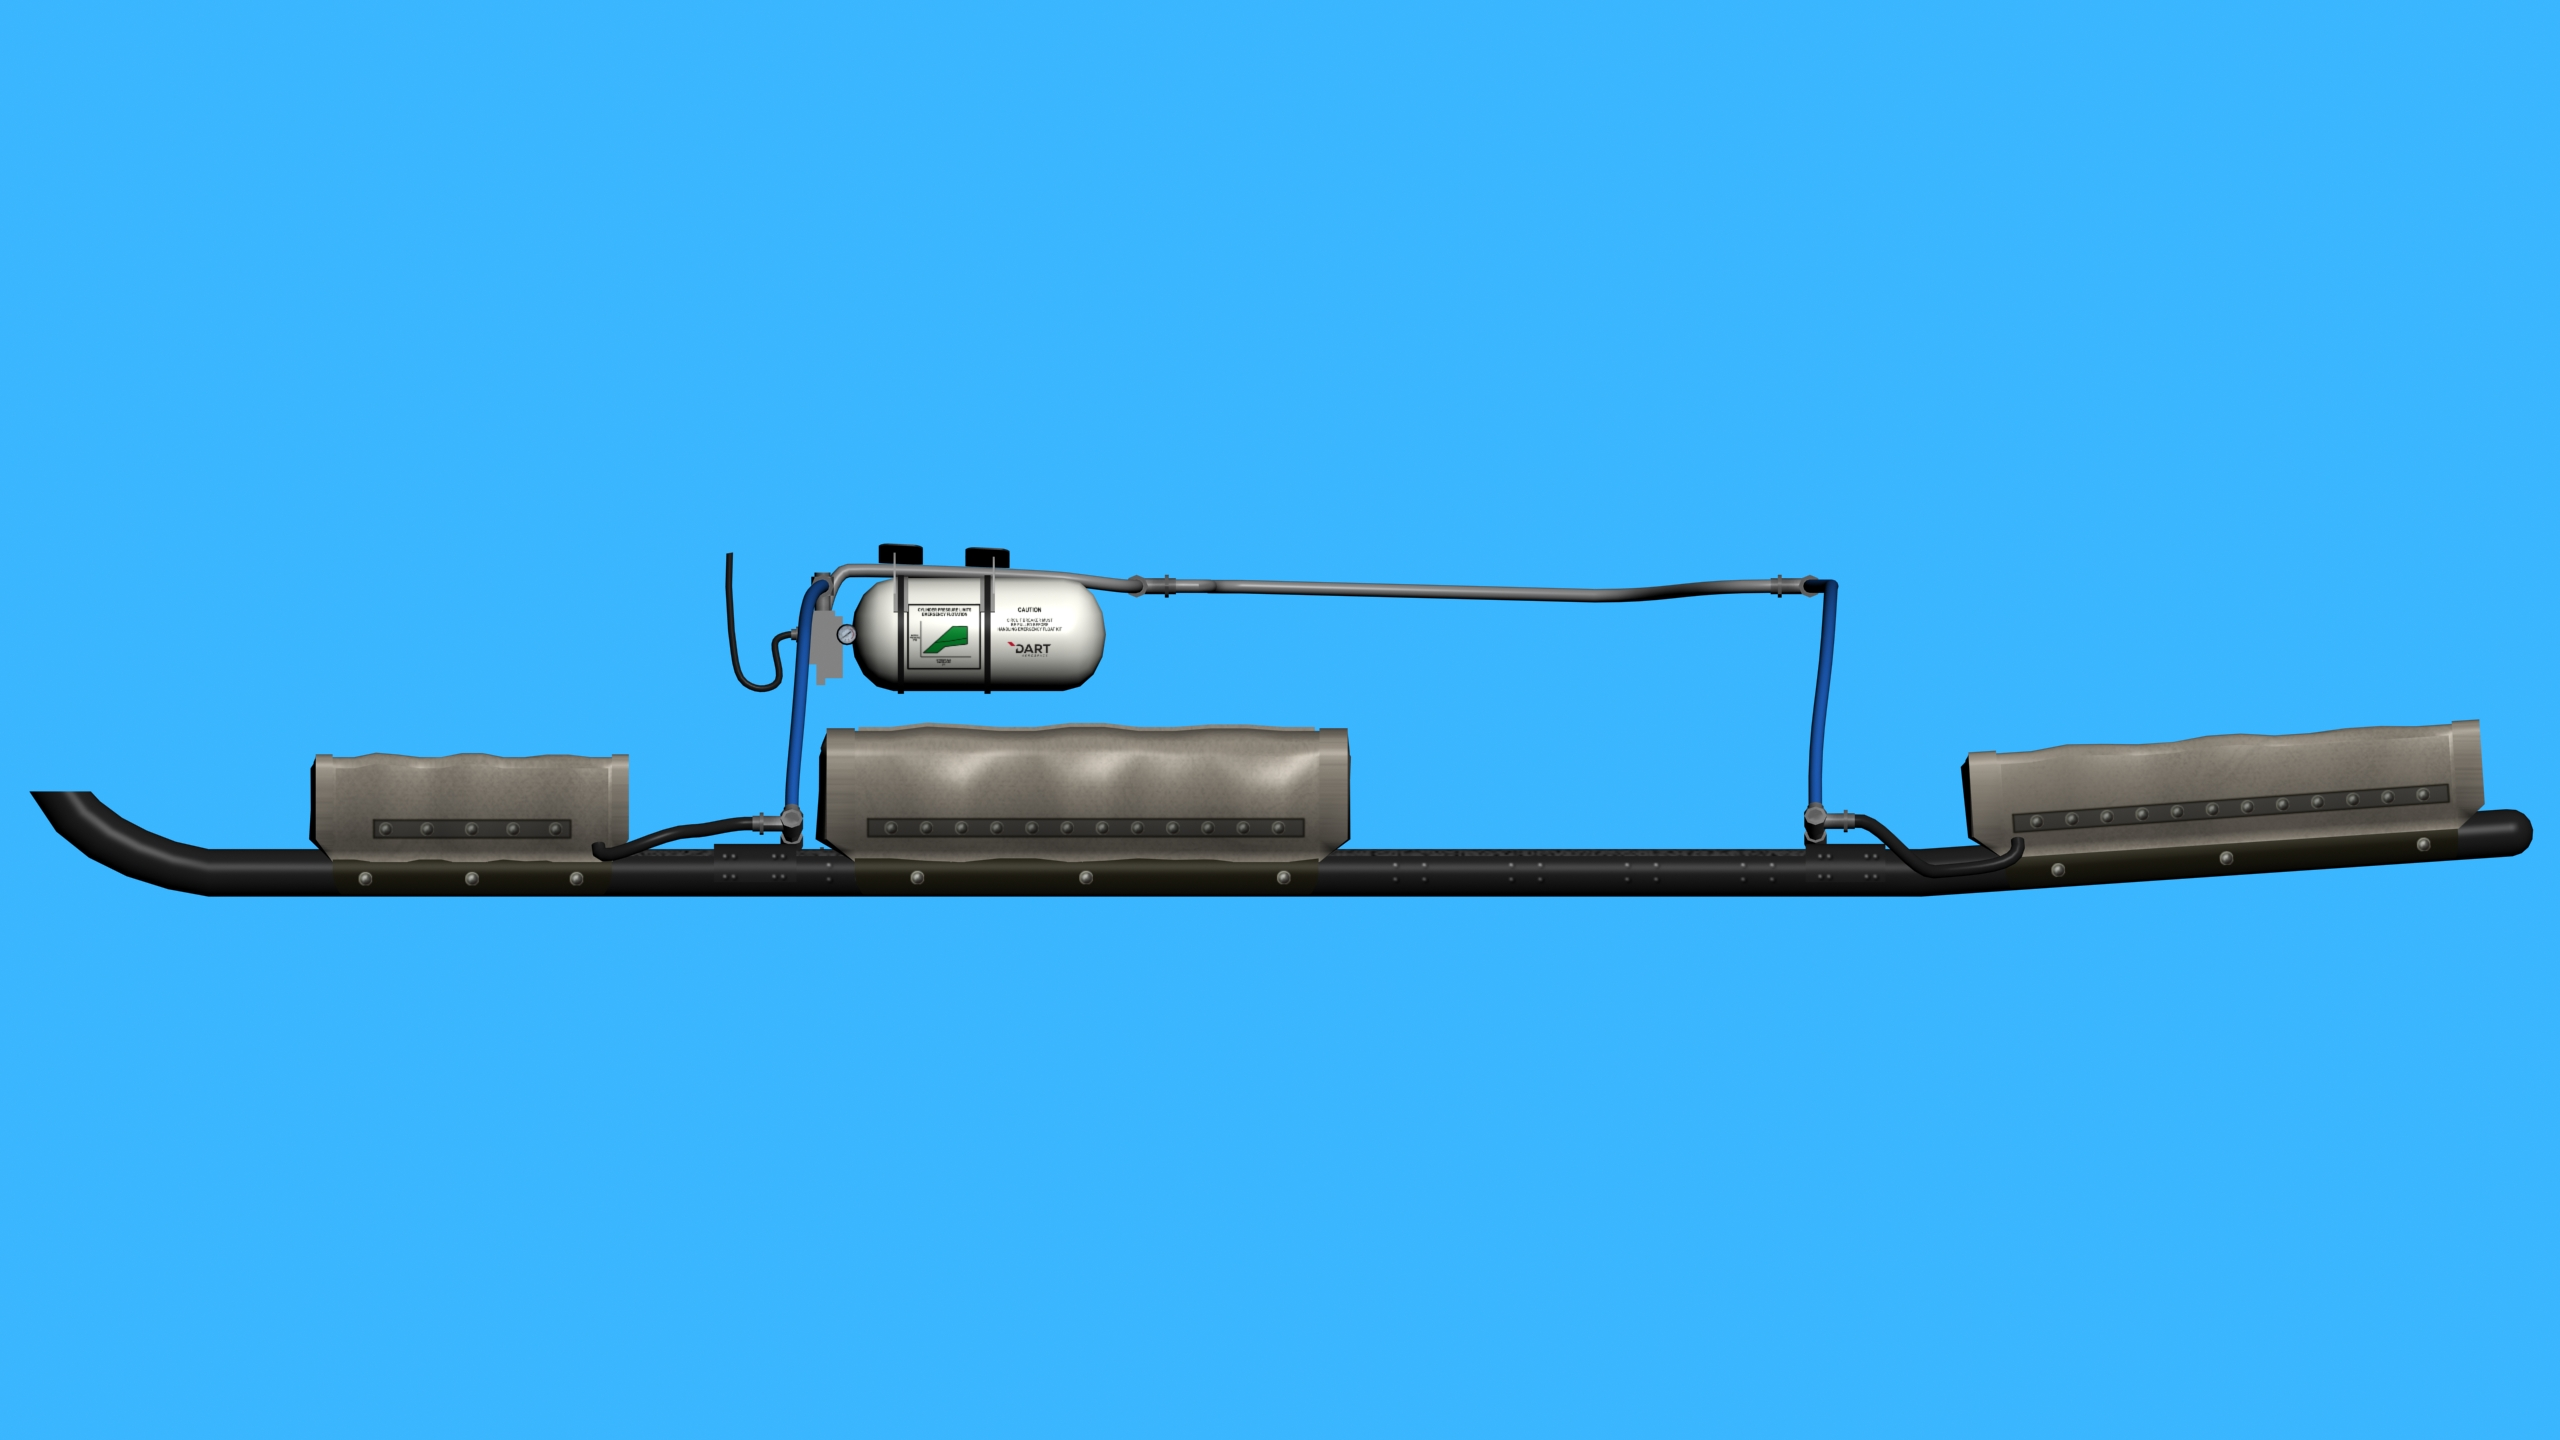 407_float_circuit_03.jpg